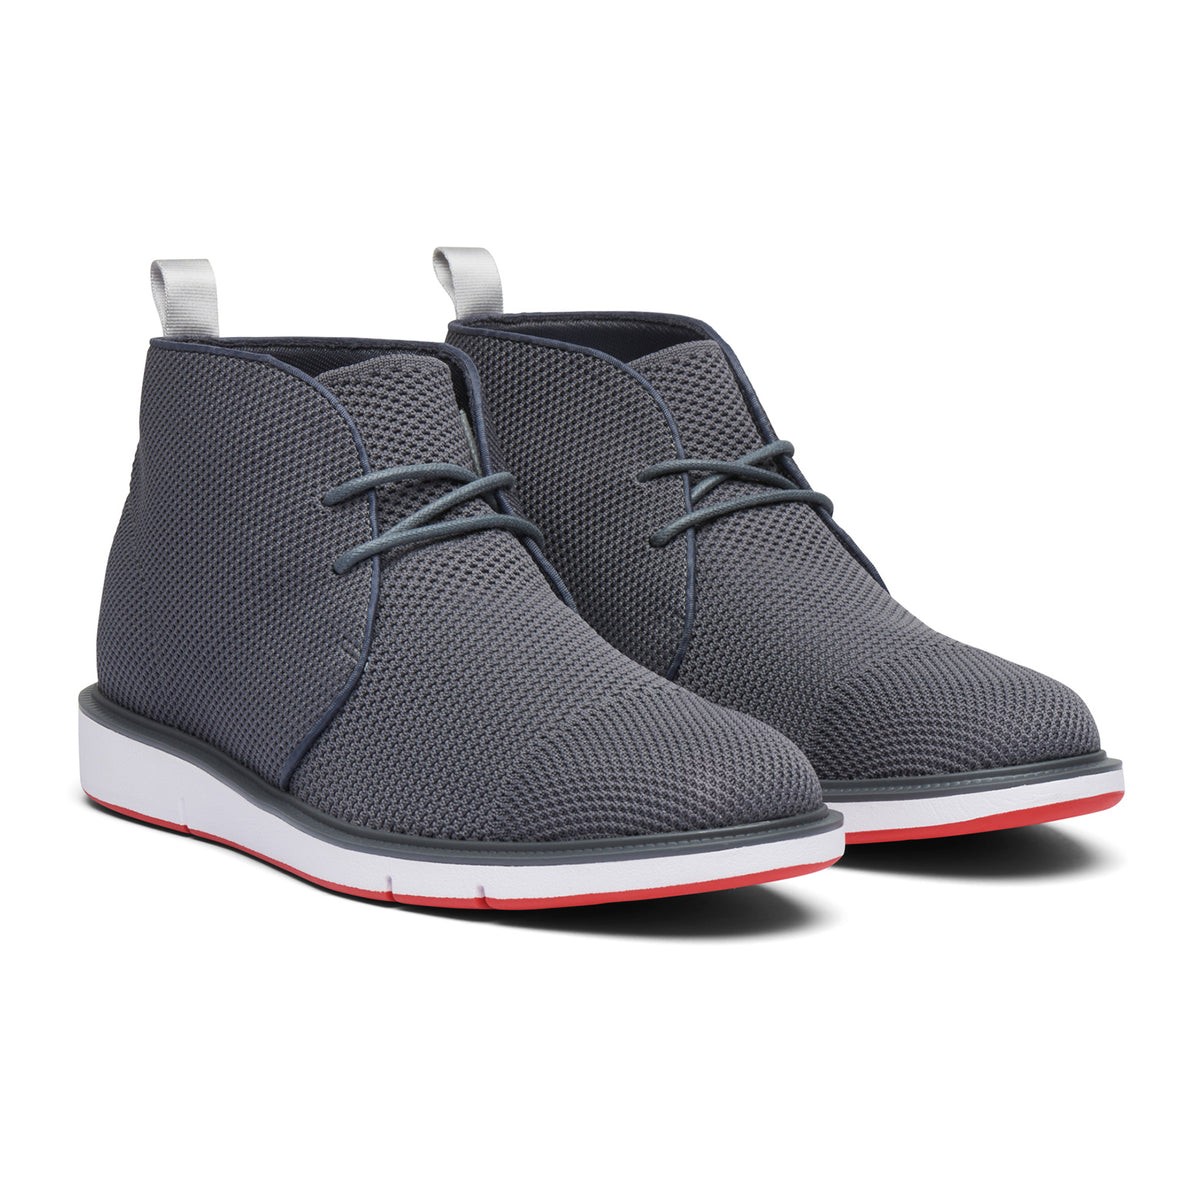 Motion Knit Chukka - background::white,variant::Gray/Red Alert